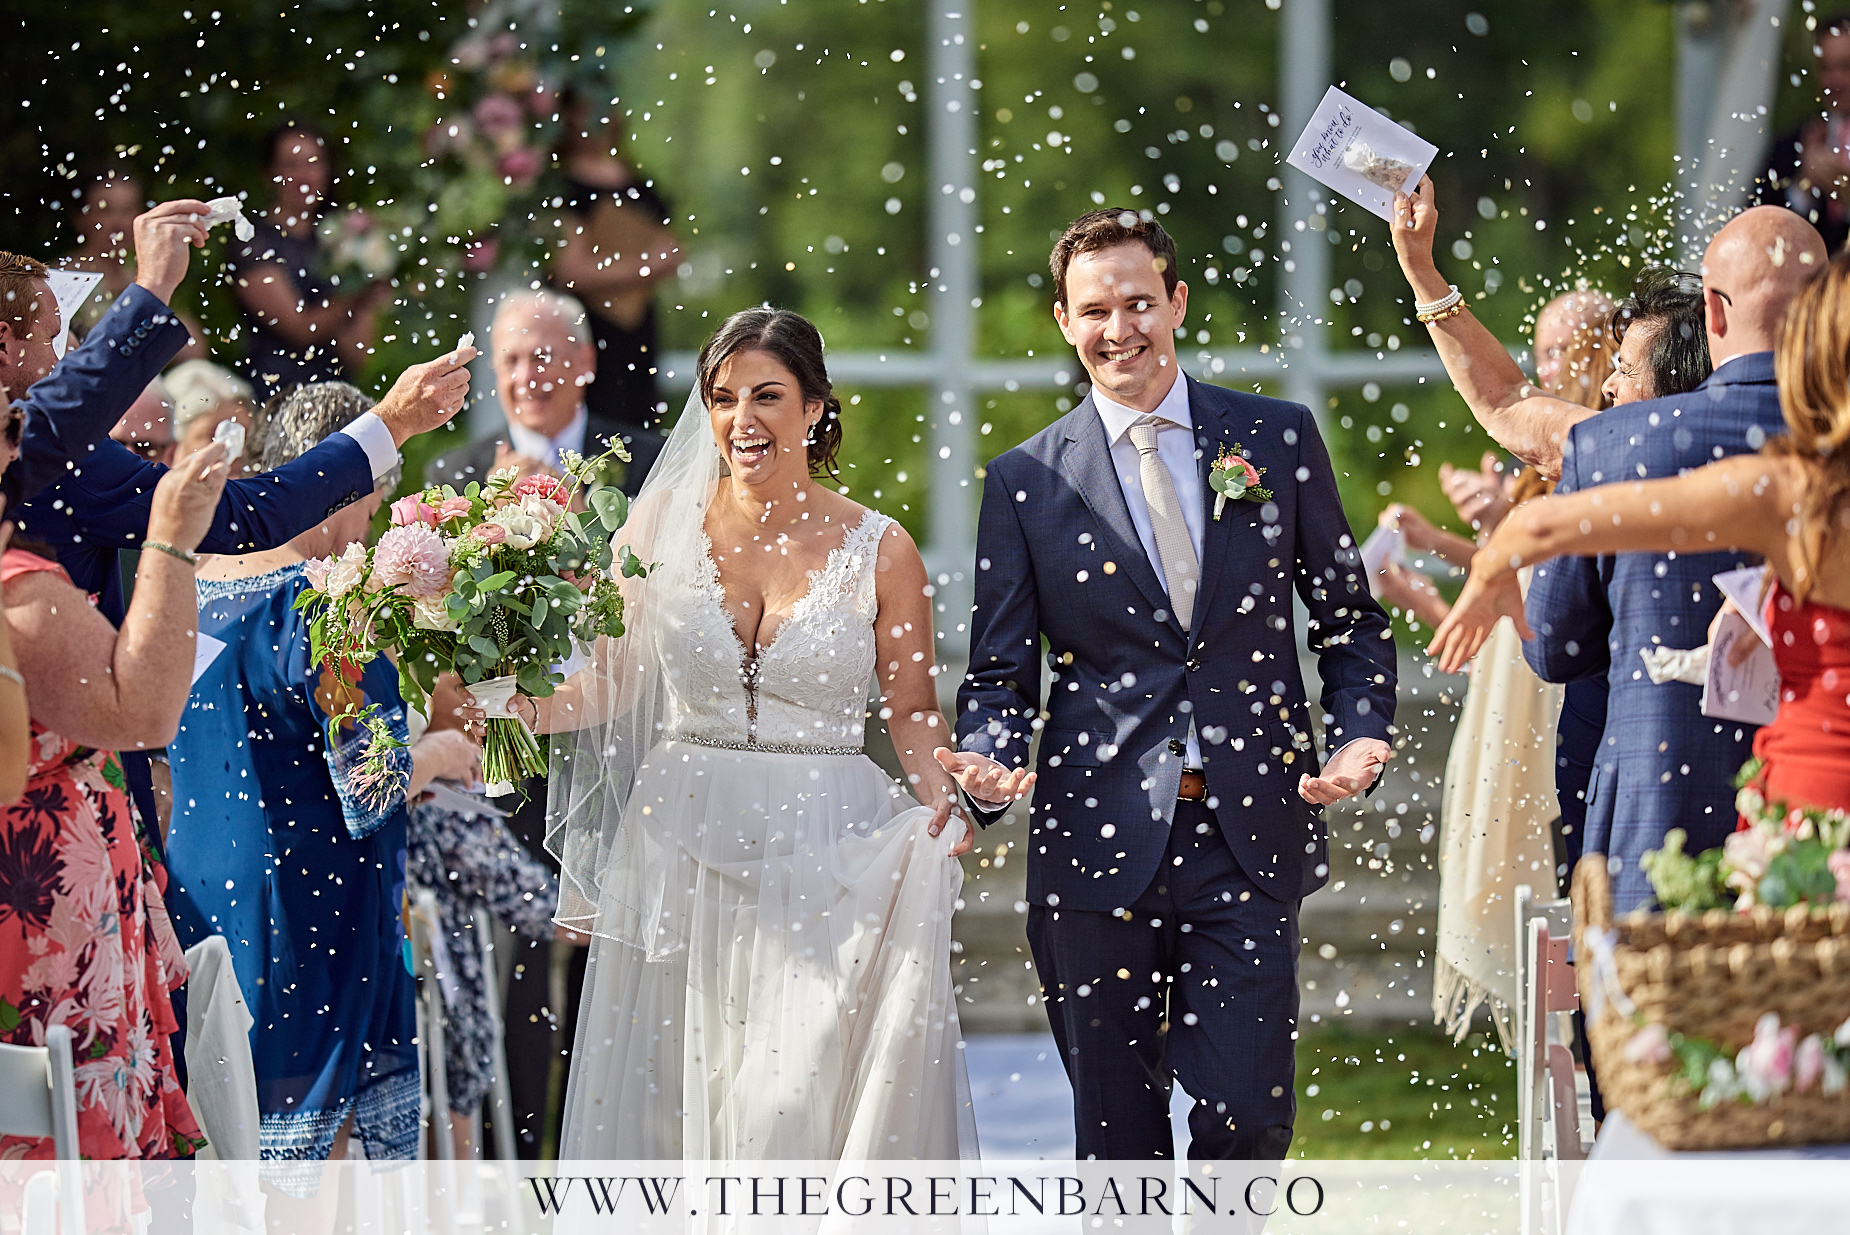 Bride and Groom Recessional Guests Throwing Confetti Photo | NH Wedding Photographer